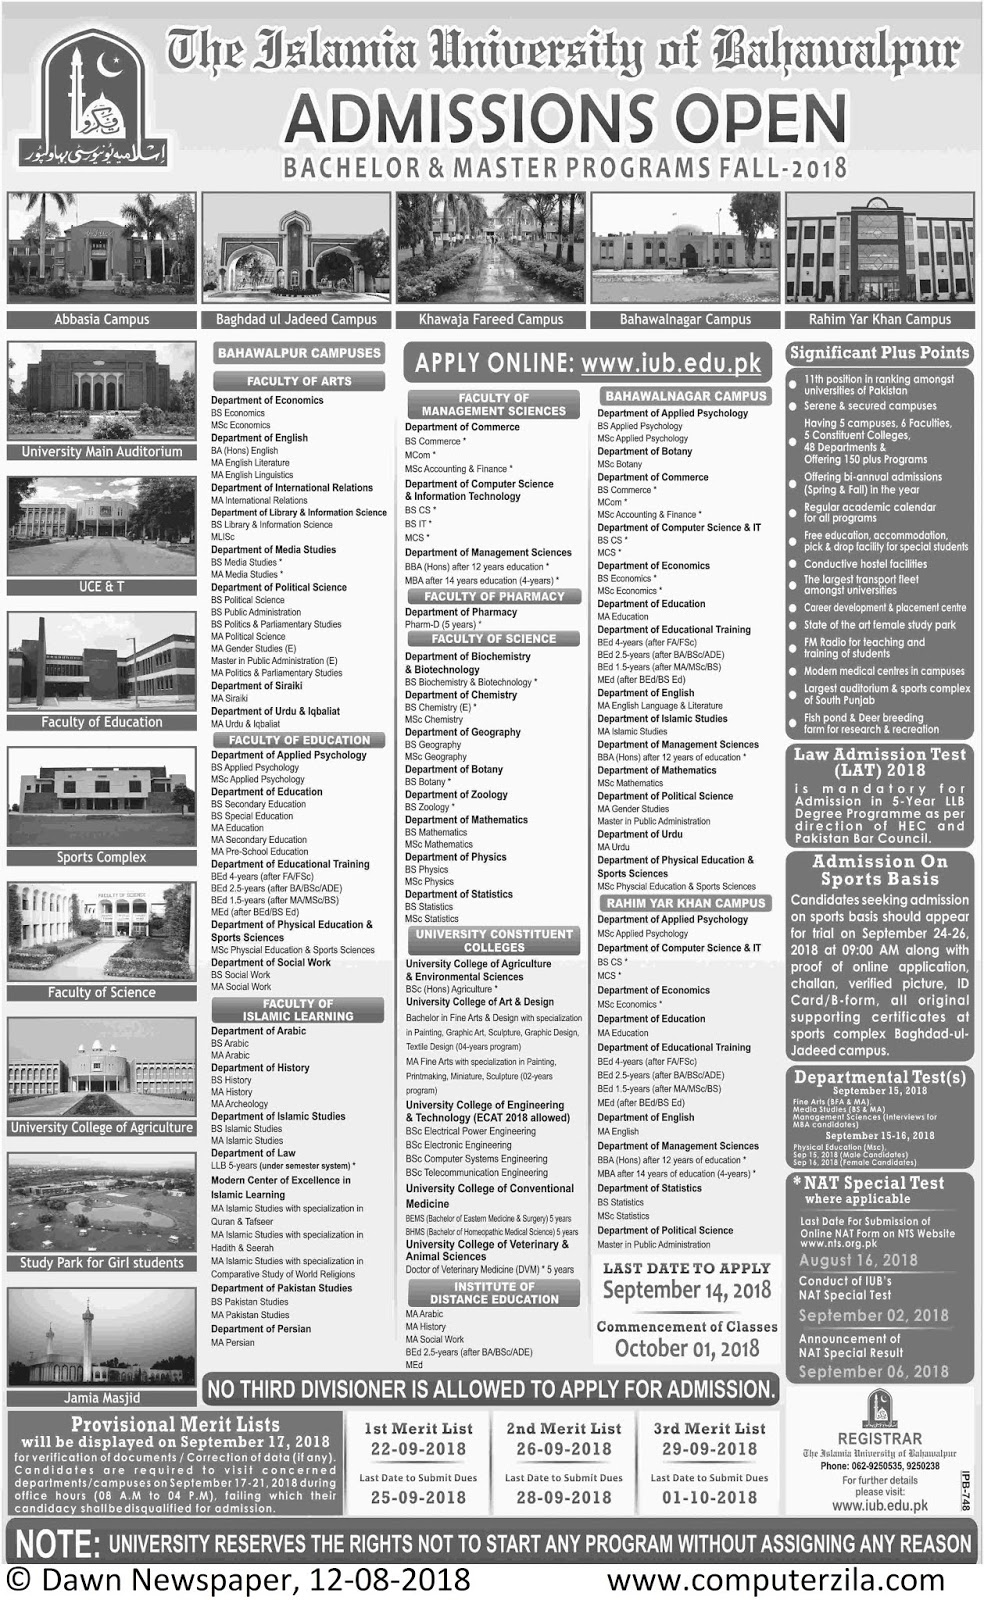 Admissions Open For Fall 2018 At IUB Bahawalpur, Bahawalnagar and Rahim Yar Khan Campus